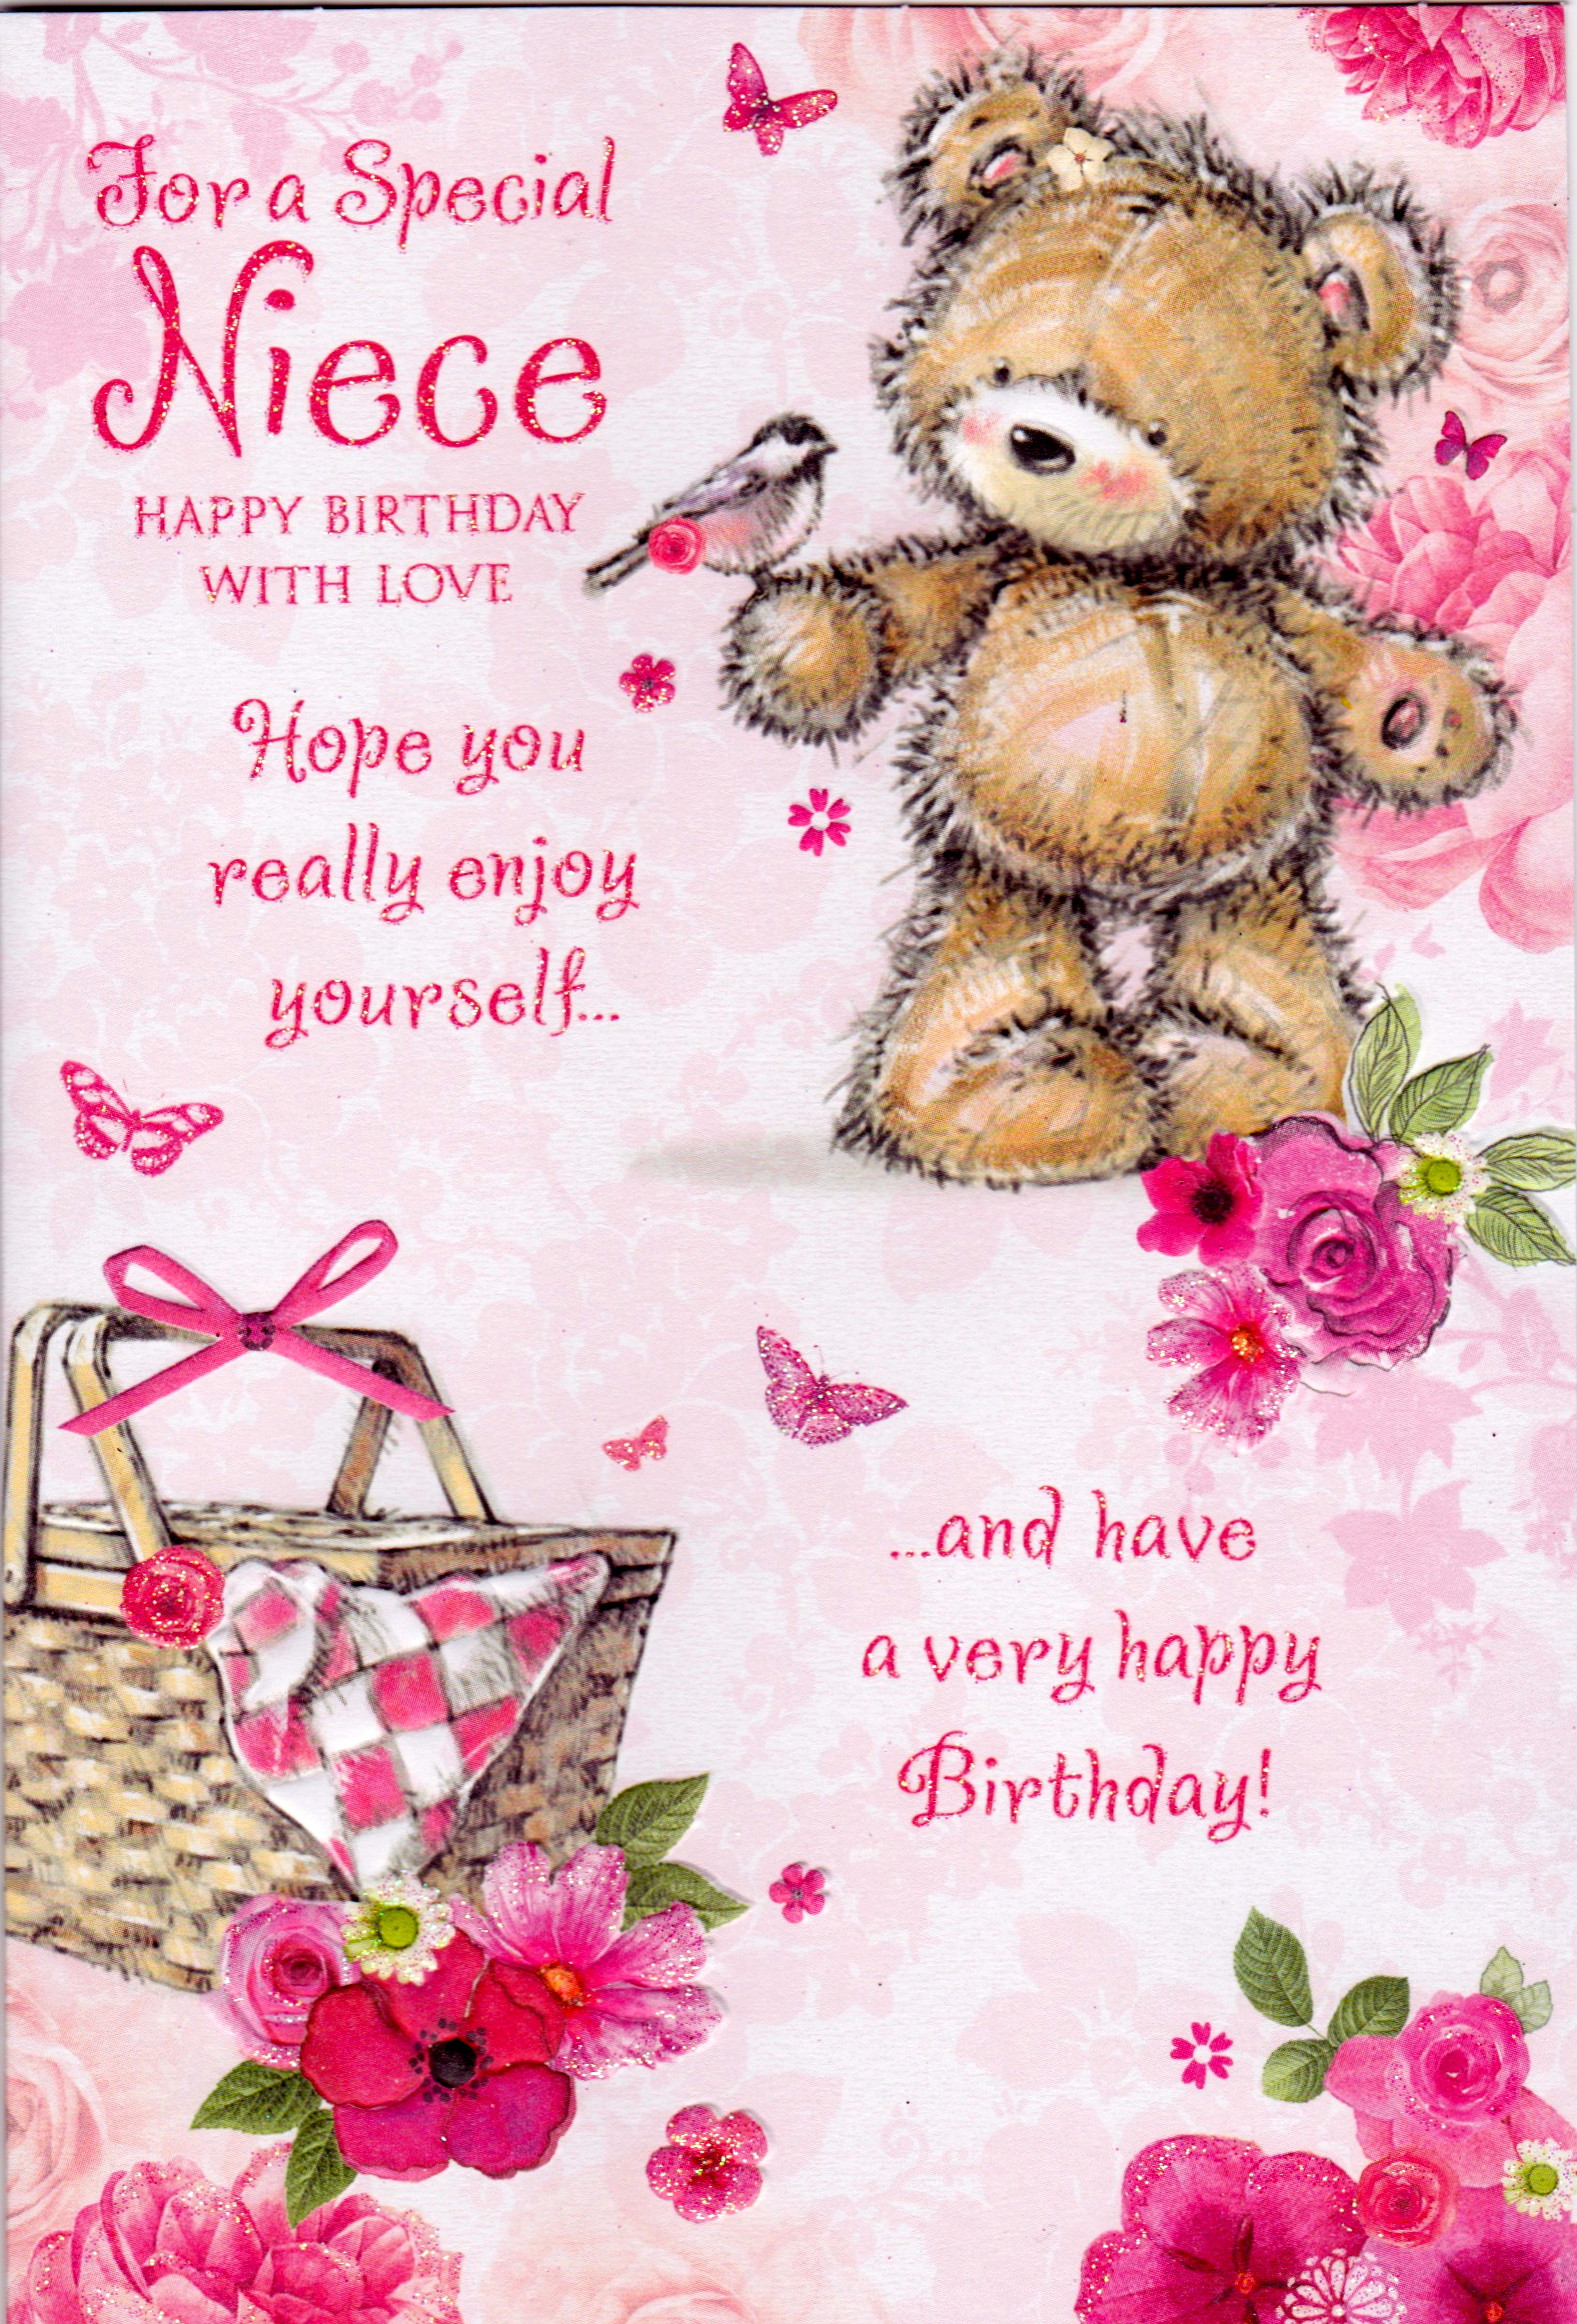 Best ideas about Happy Birthday Quote For Niece . Save or Pin Happy 16th Birthday Niece Quotes QuotesGram Now.